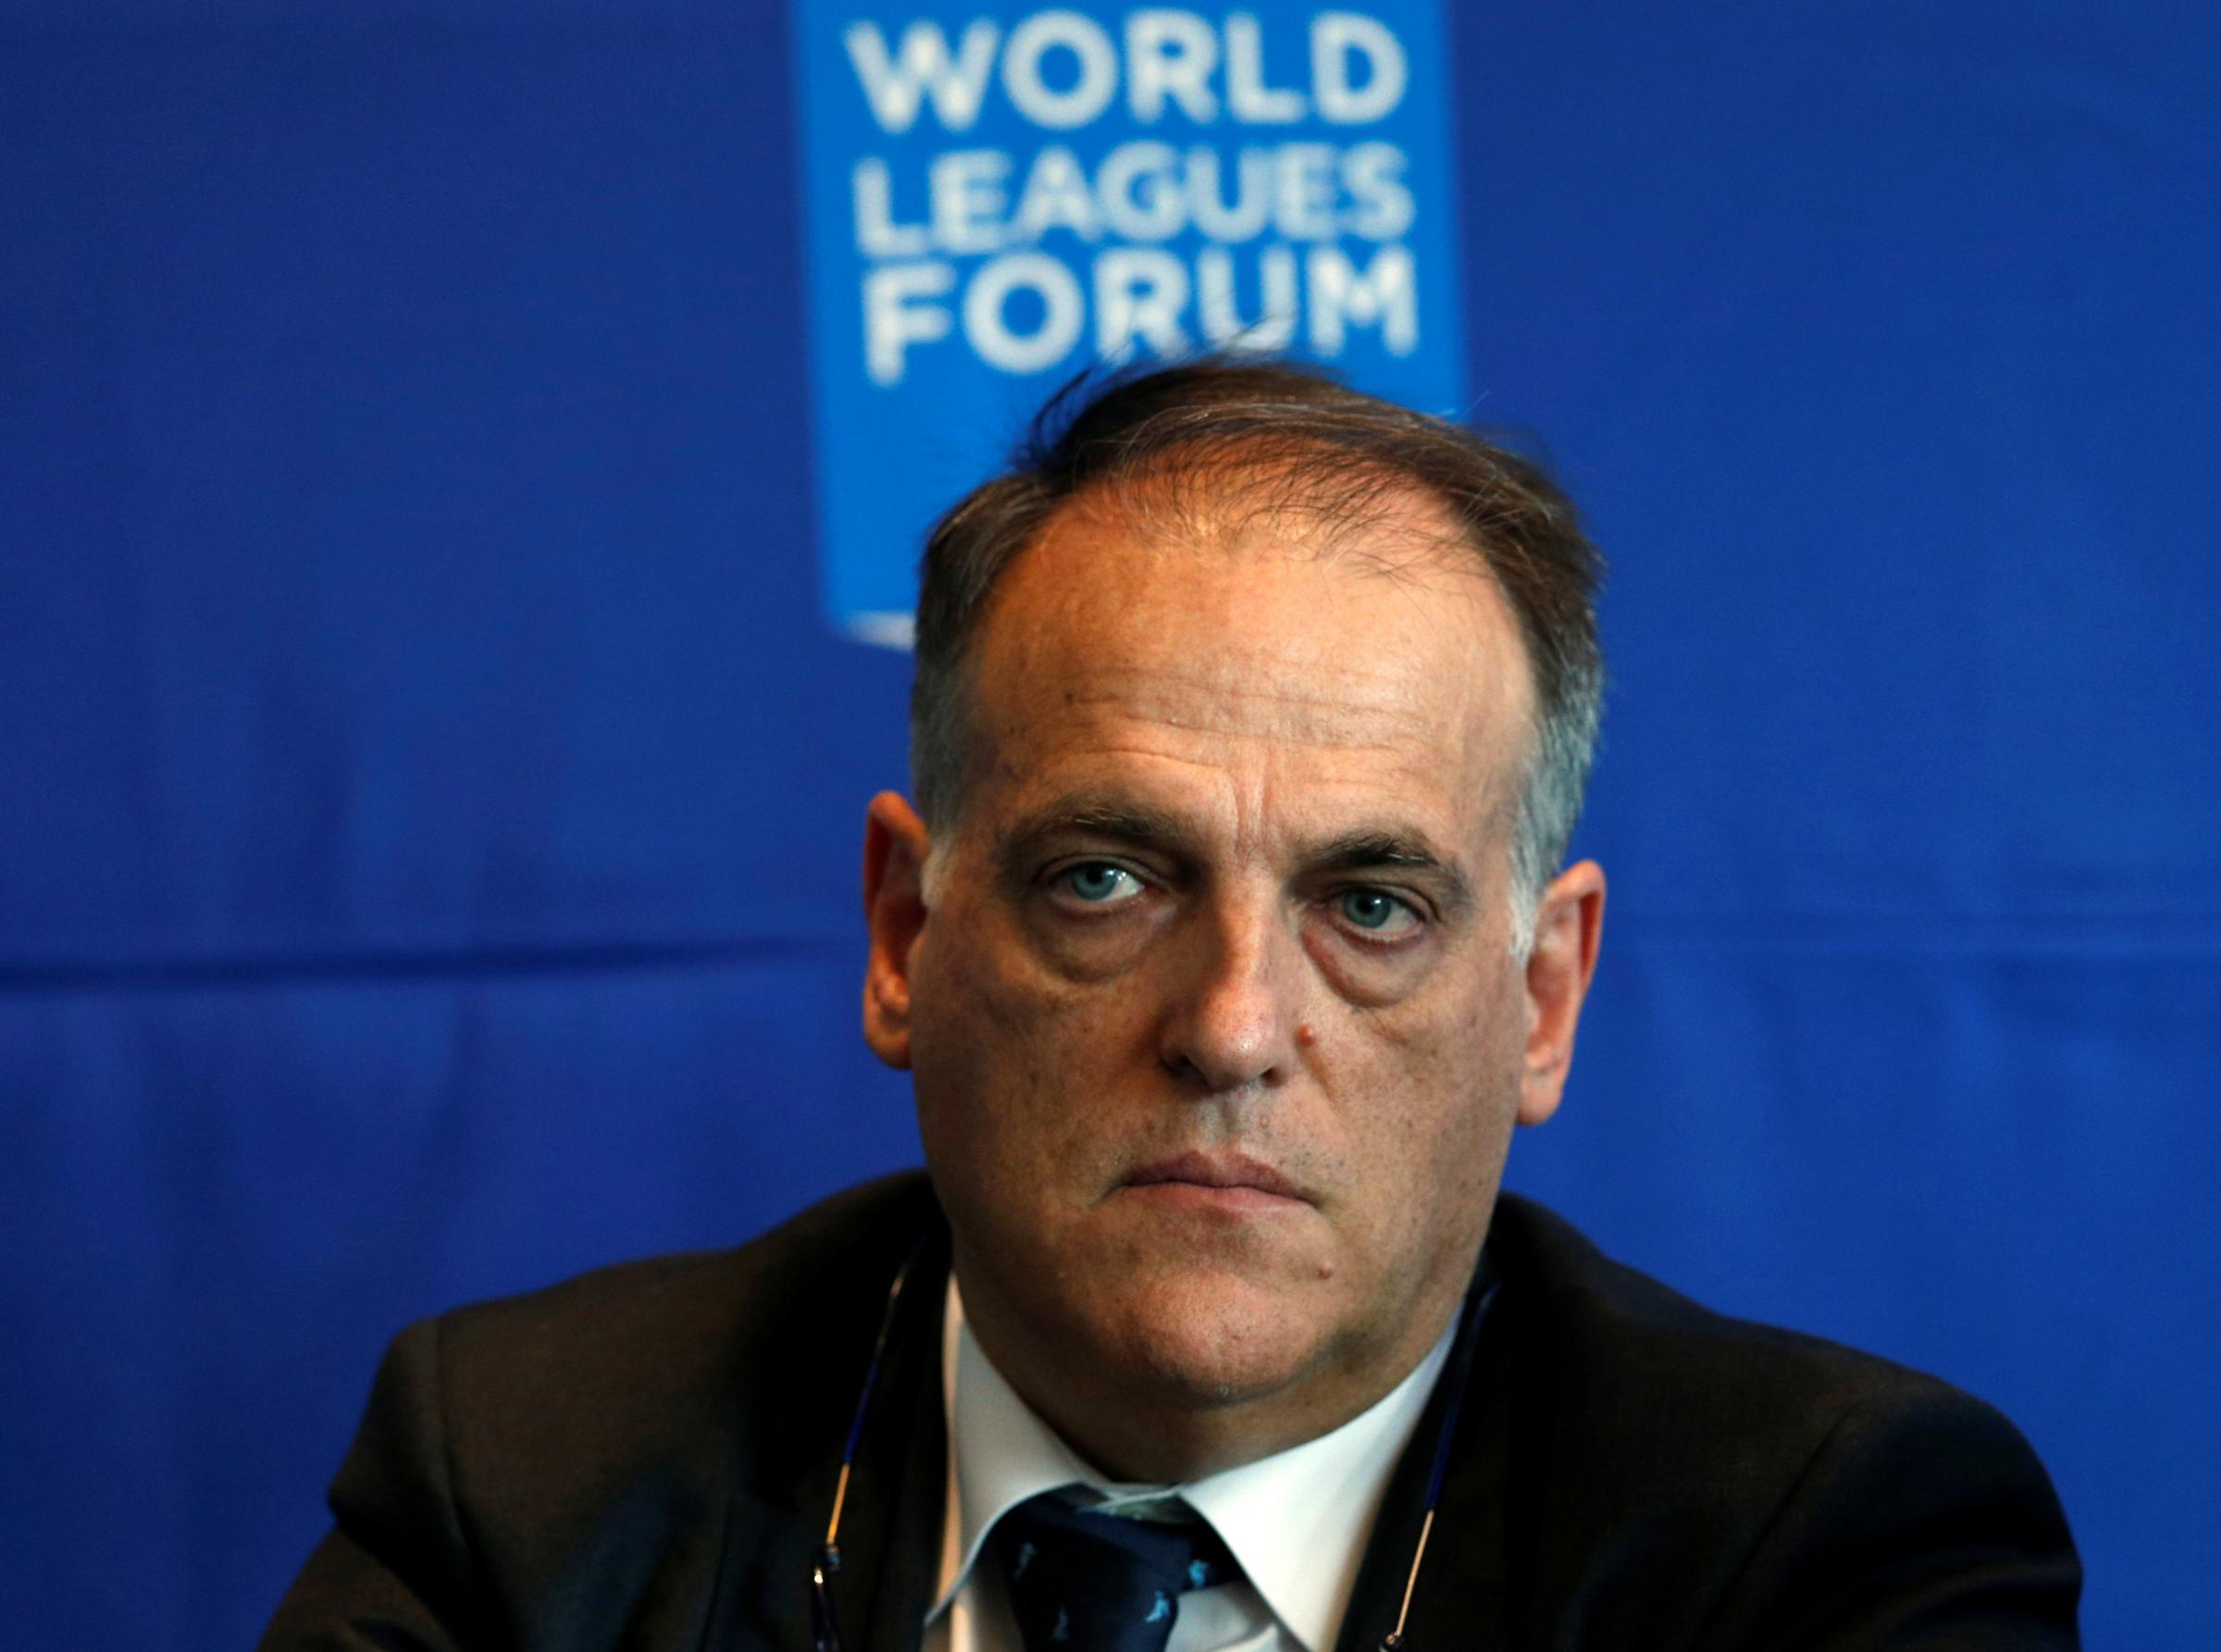 La Liga president Javier Tebas claims European leagues aiming for mid-May start